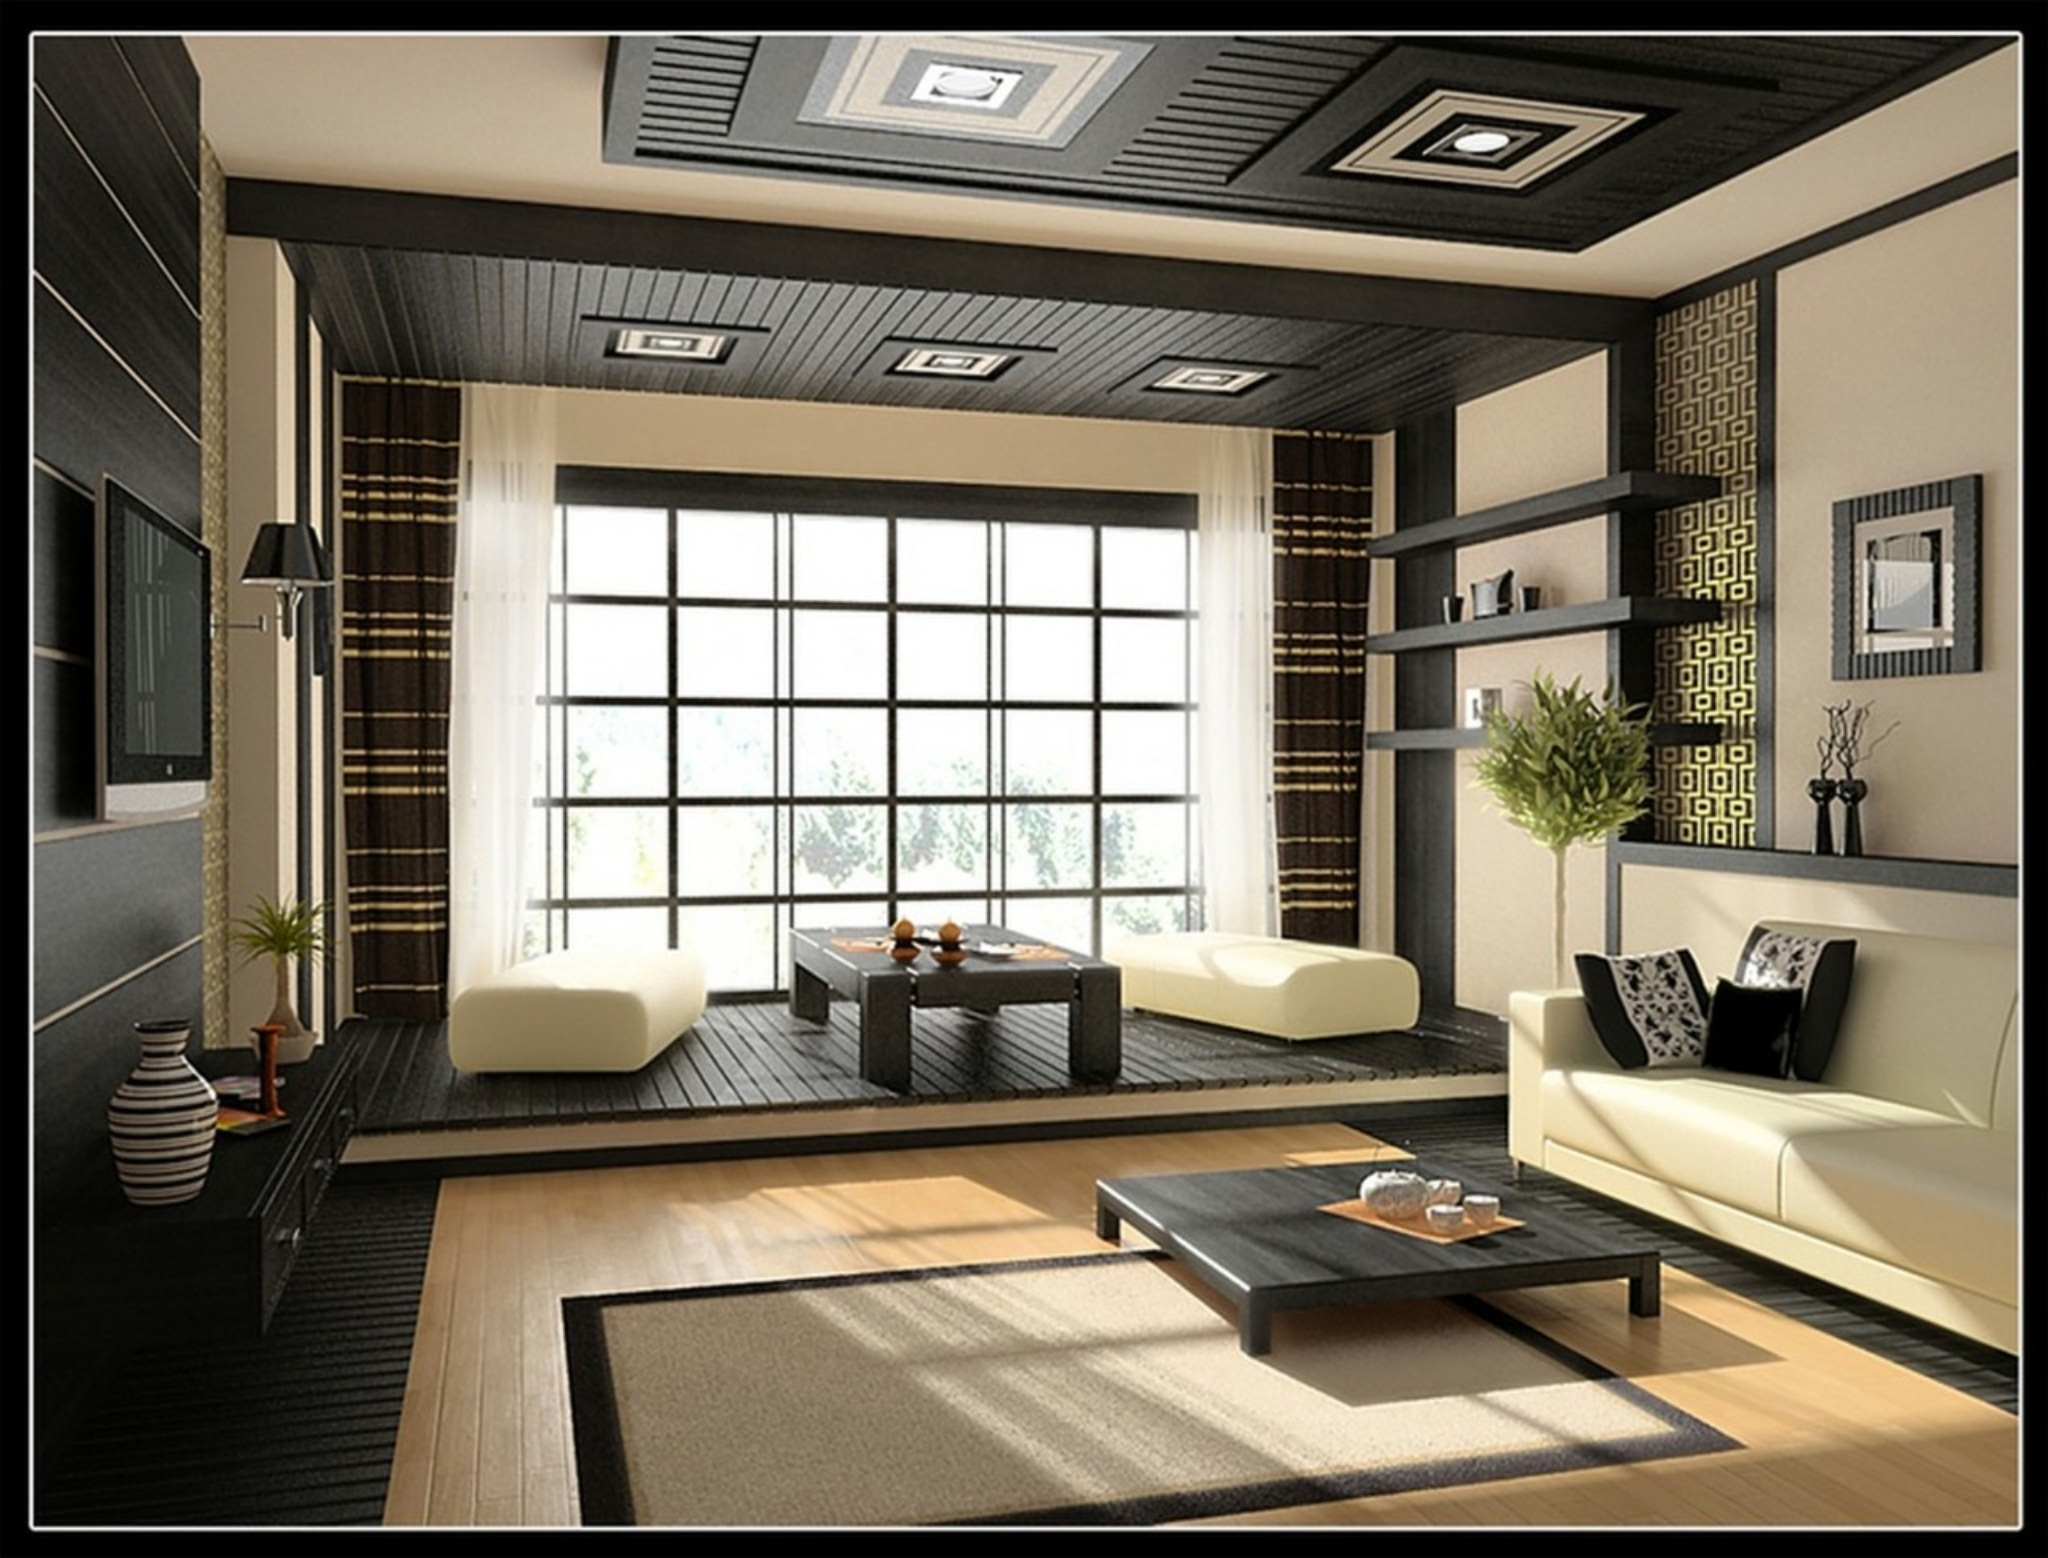 Trend Contemporary Homes Interior Designs With Contemporary Japanese Interior Design Interior Designer Also Feel Modern Japanese Interiors Interior Images Contemporary Interior Design